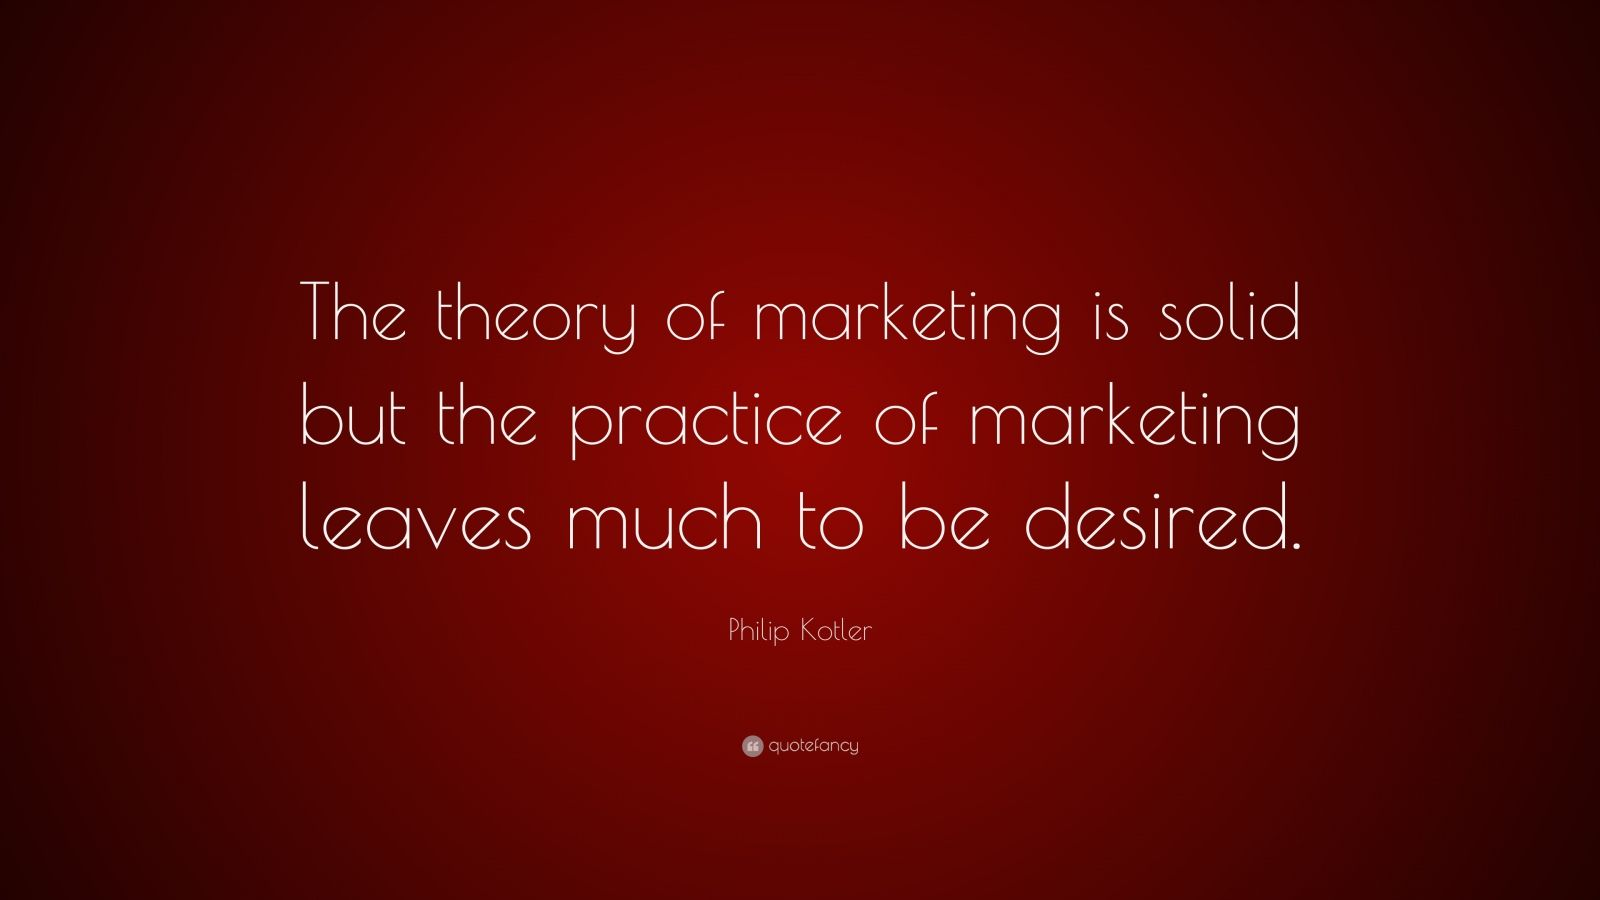 practice of marketing The paper attempts to distinguish between the practice of commercial marketing,  whose goal is profit, and the practice of social marketing, whose goal is societal.